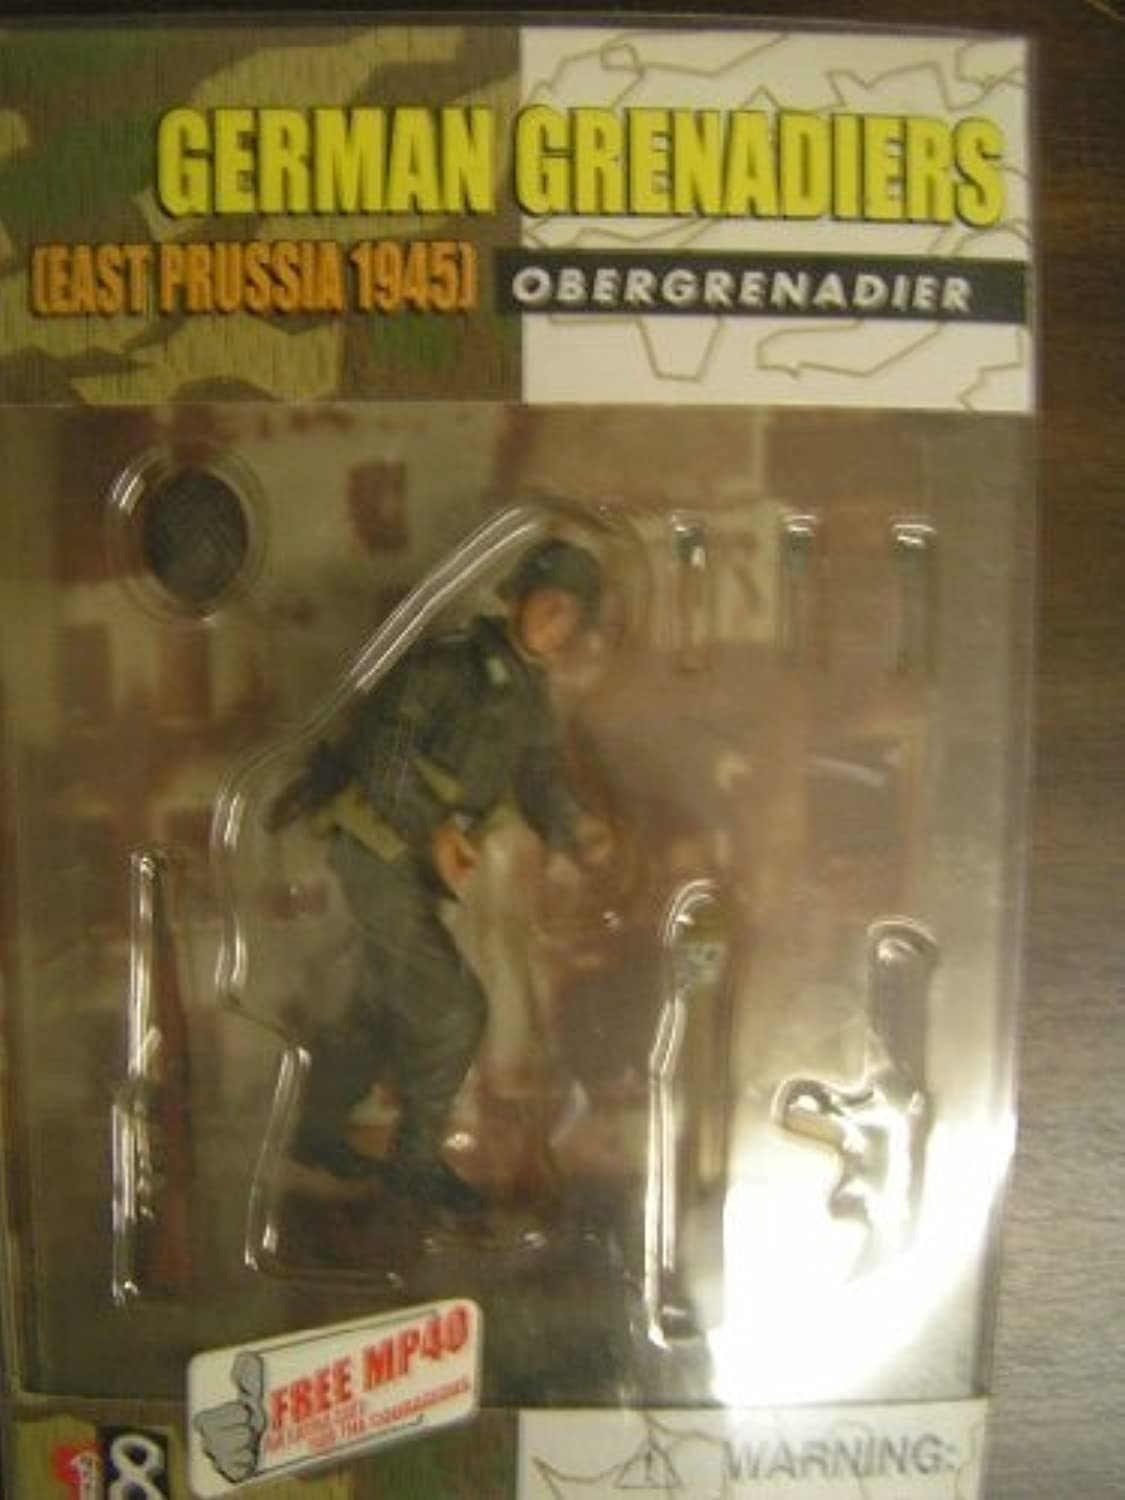 German Granadiers East Prussia 1945 Obergrenadier Dragon Action Figure 2001 by Action 18